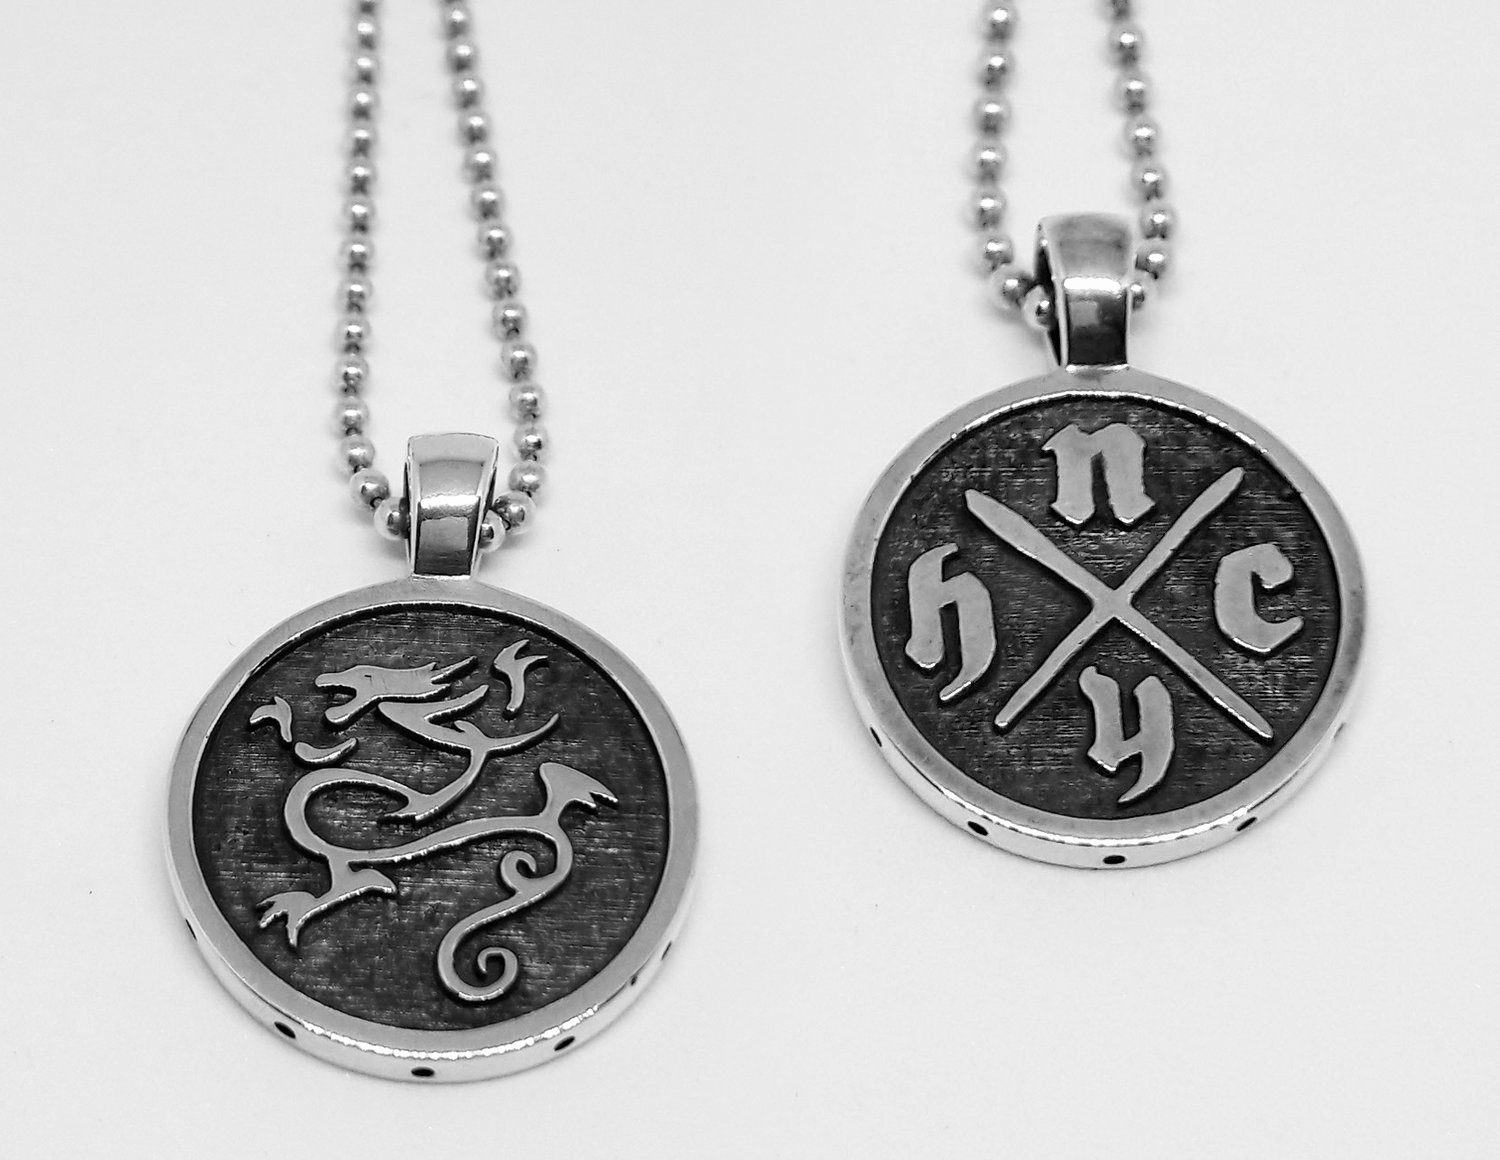 New Sick Of It All pendants are now available